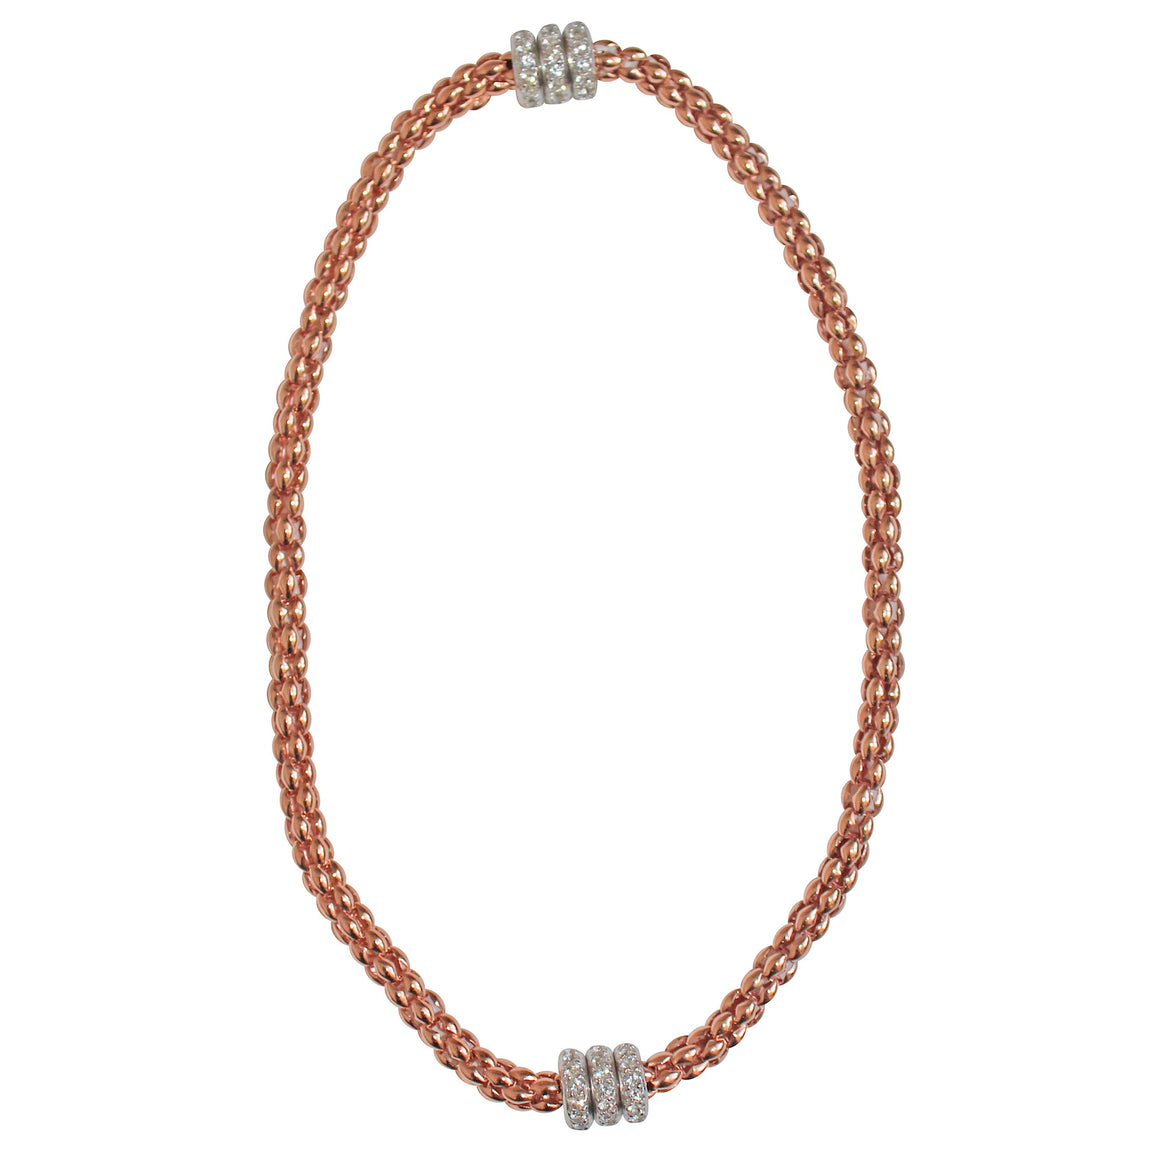 Roda Magnetic Choker- Rose Gold Plated on Sterling Silver